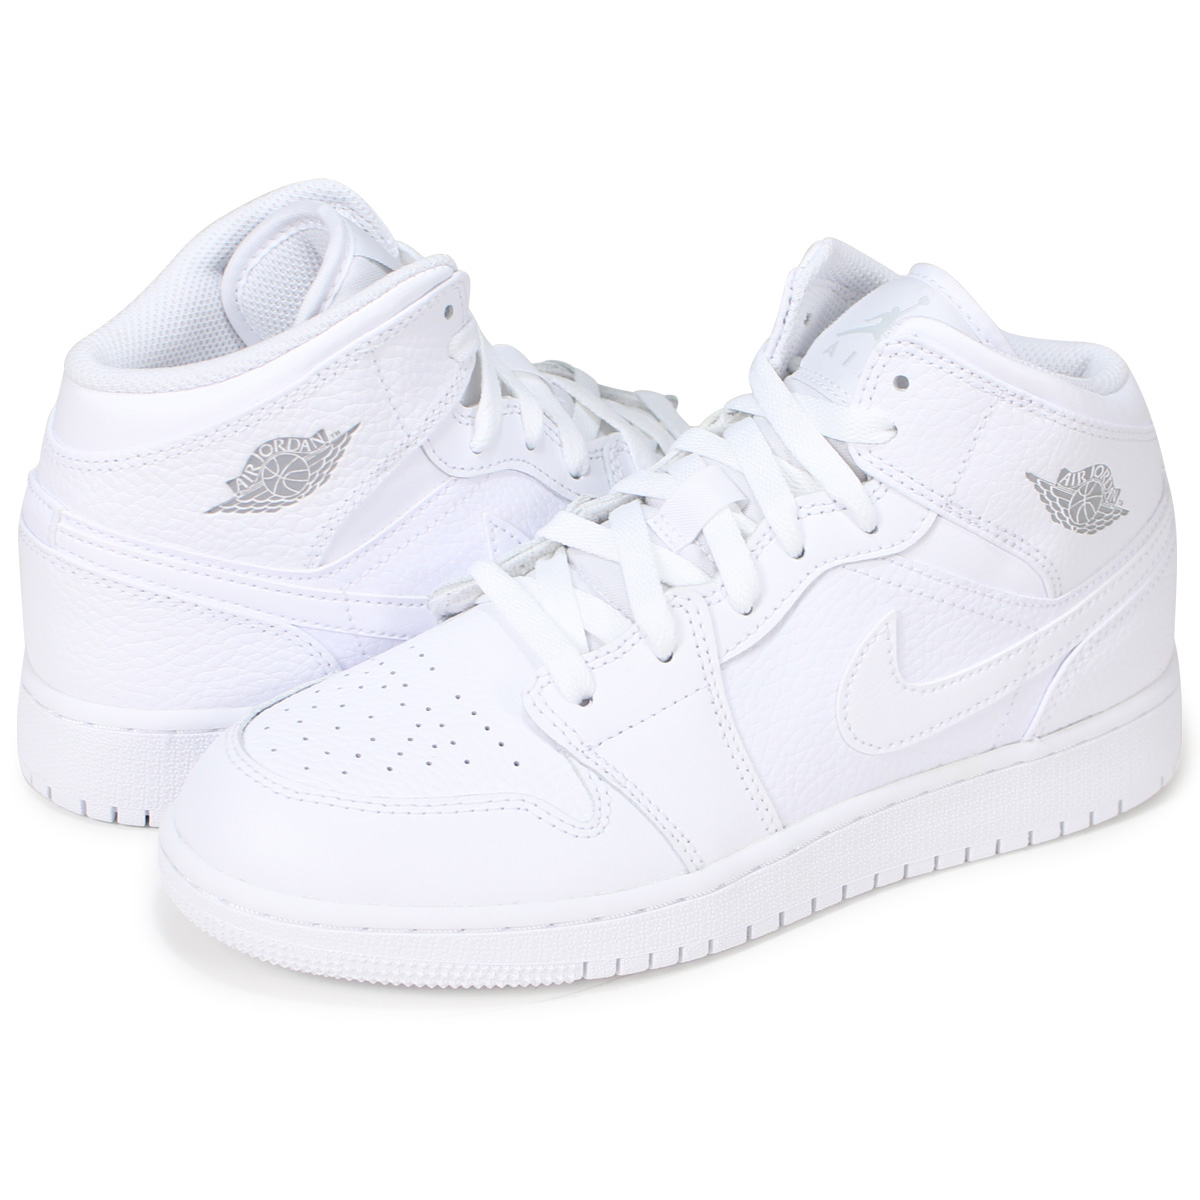 quality design 6d7fa 96e6a NIKE AIR JORDAN 1 MID GS Nike Air Jordan 1 Lady's sneakers 554,725-109  white [7/13 Shinnyu load]